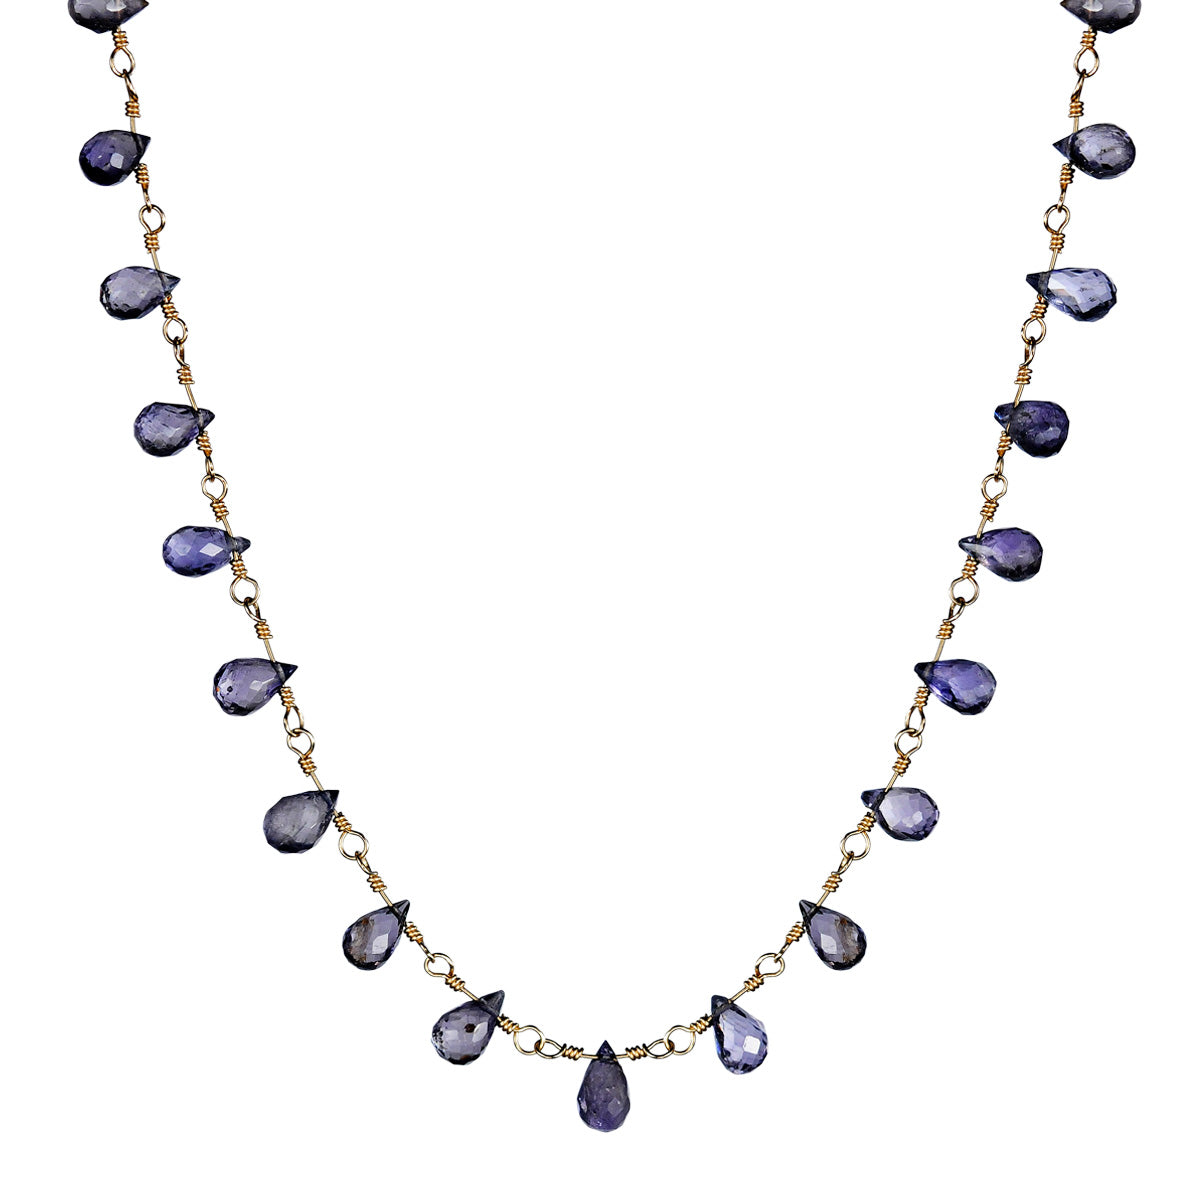 10K Gold Small Iolite Teardrop Necklace